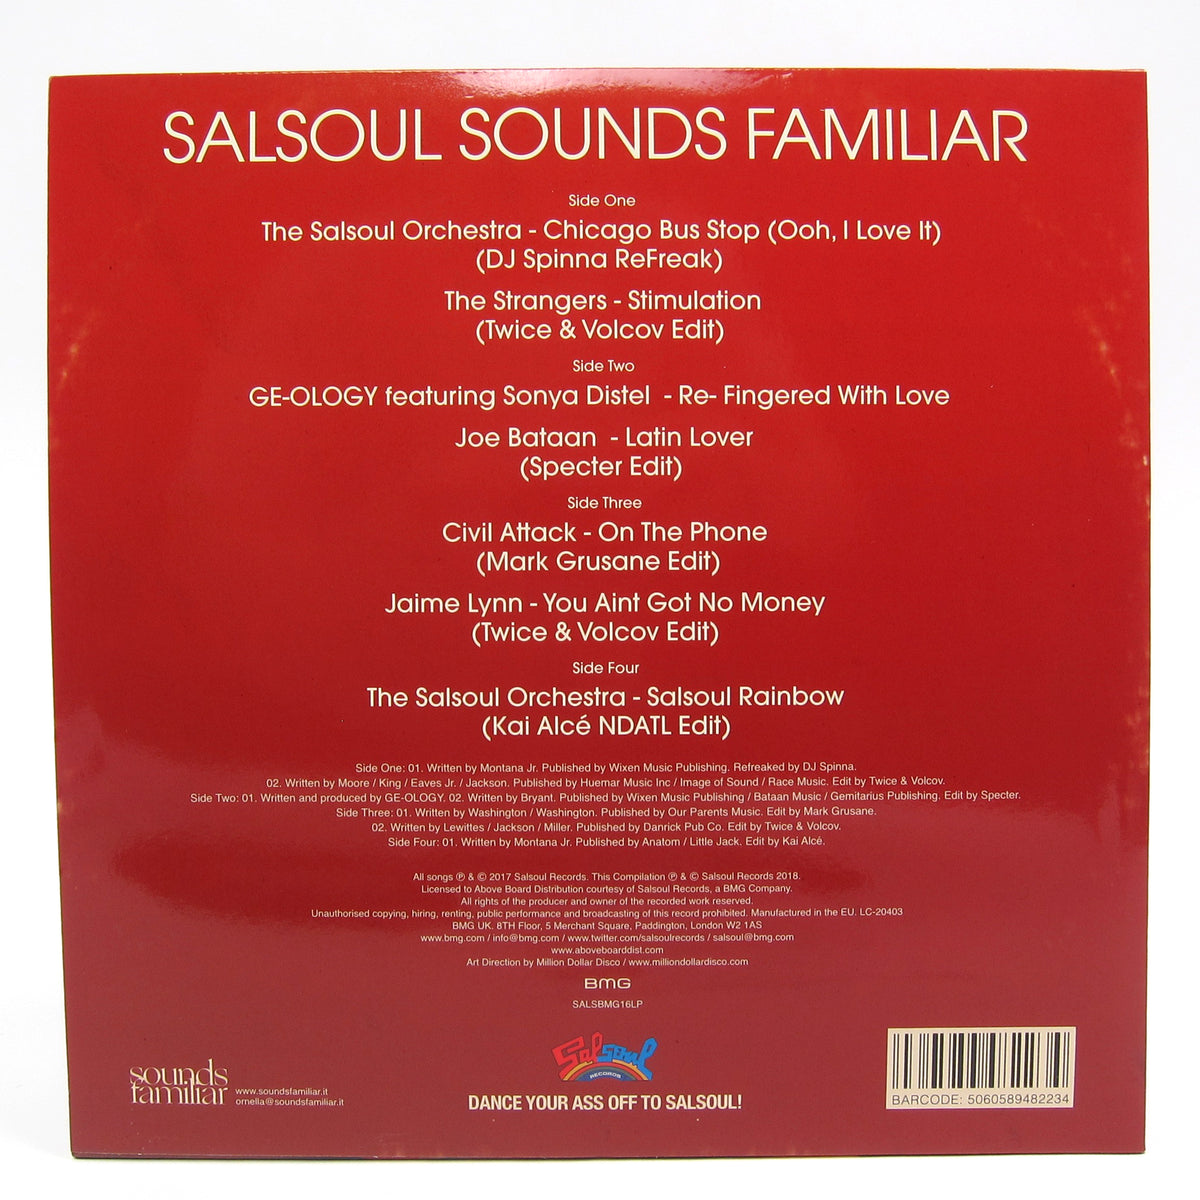 Salsoul Records: Salsoul Sounds Familiar (Re-Edits, Remixes And Remakes From The Sounds Familiar Crew) Vinyl 2LP